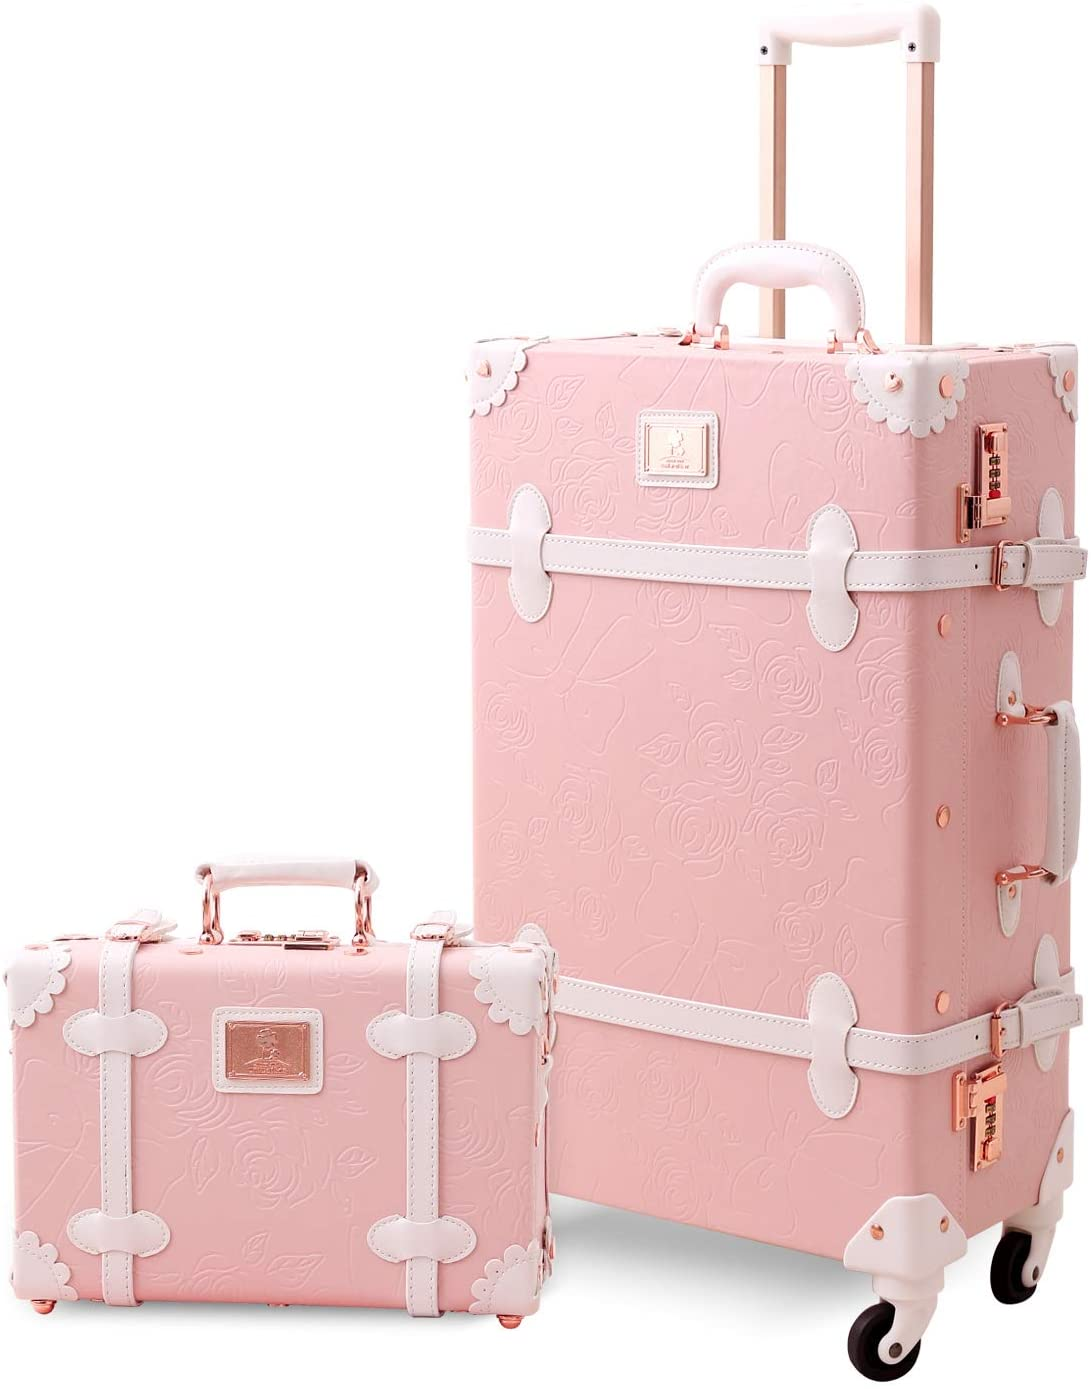 Max 42% OFF UNIWALKER Vintage Suitcase Set 20 Luggage inch Spinner on Carry Easy-to-use